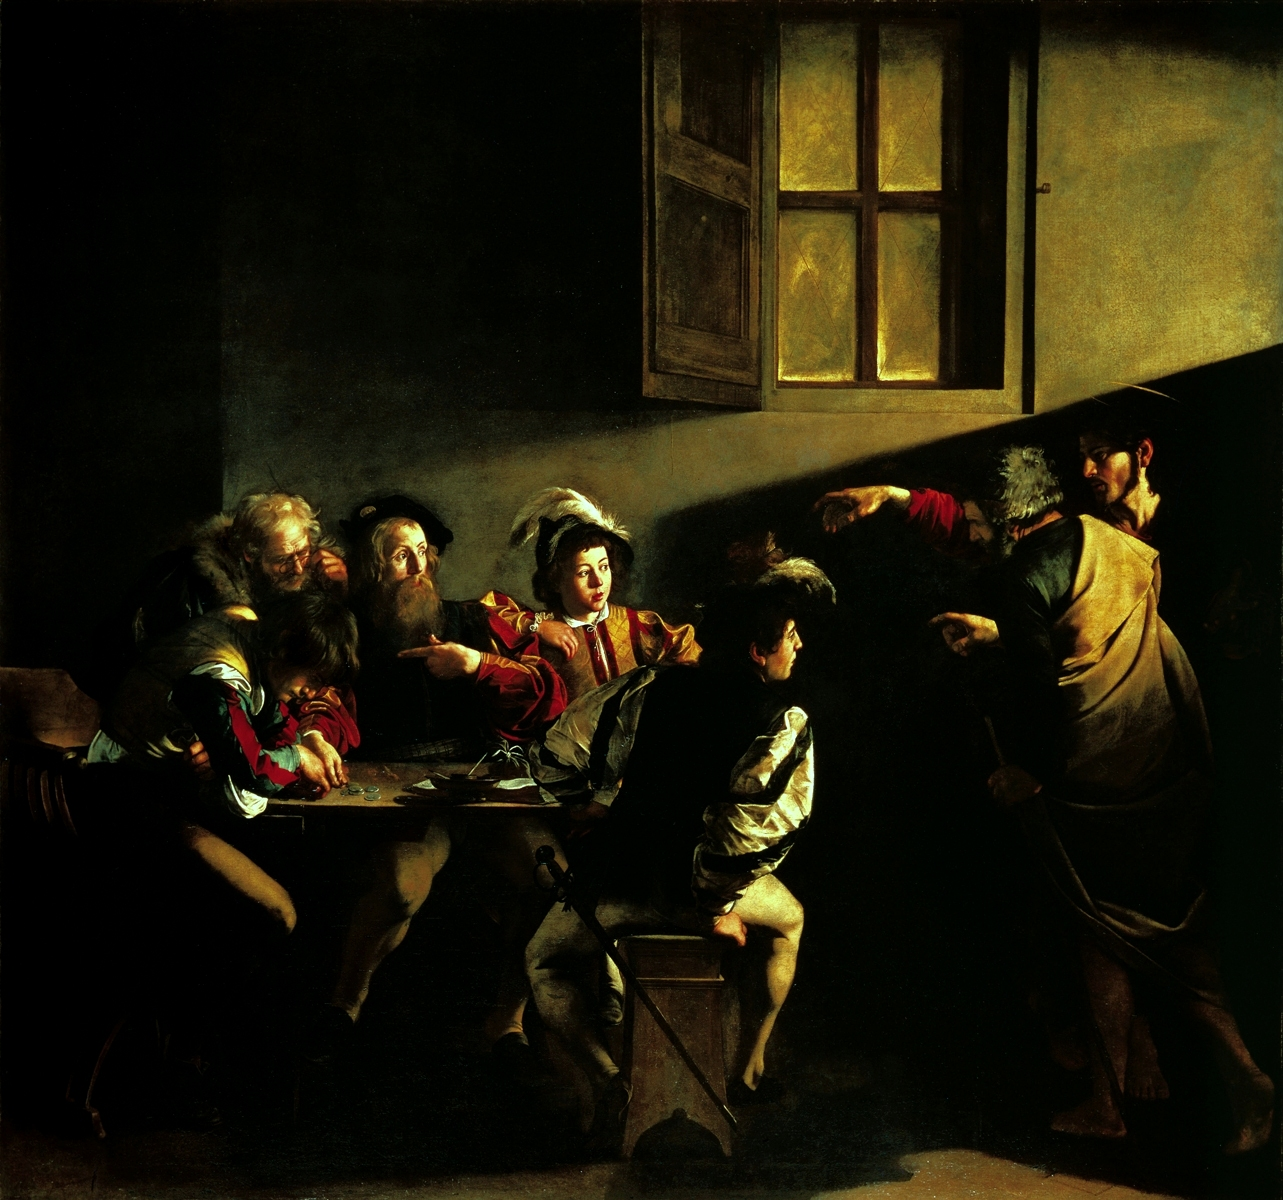 an analysis of the calling of st mathew In the calling of st matthew highlight and shadow create a dynamic portrayal of   without this light, so natural yet so charged with symbolic meaning, the picture .